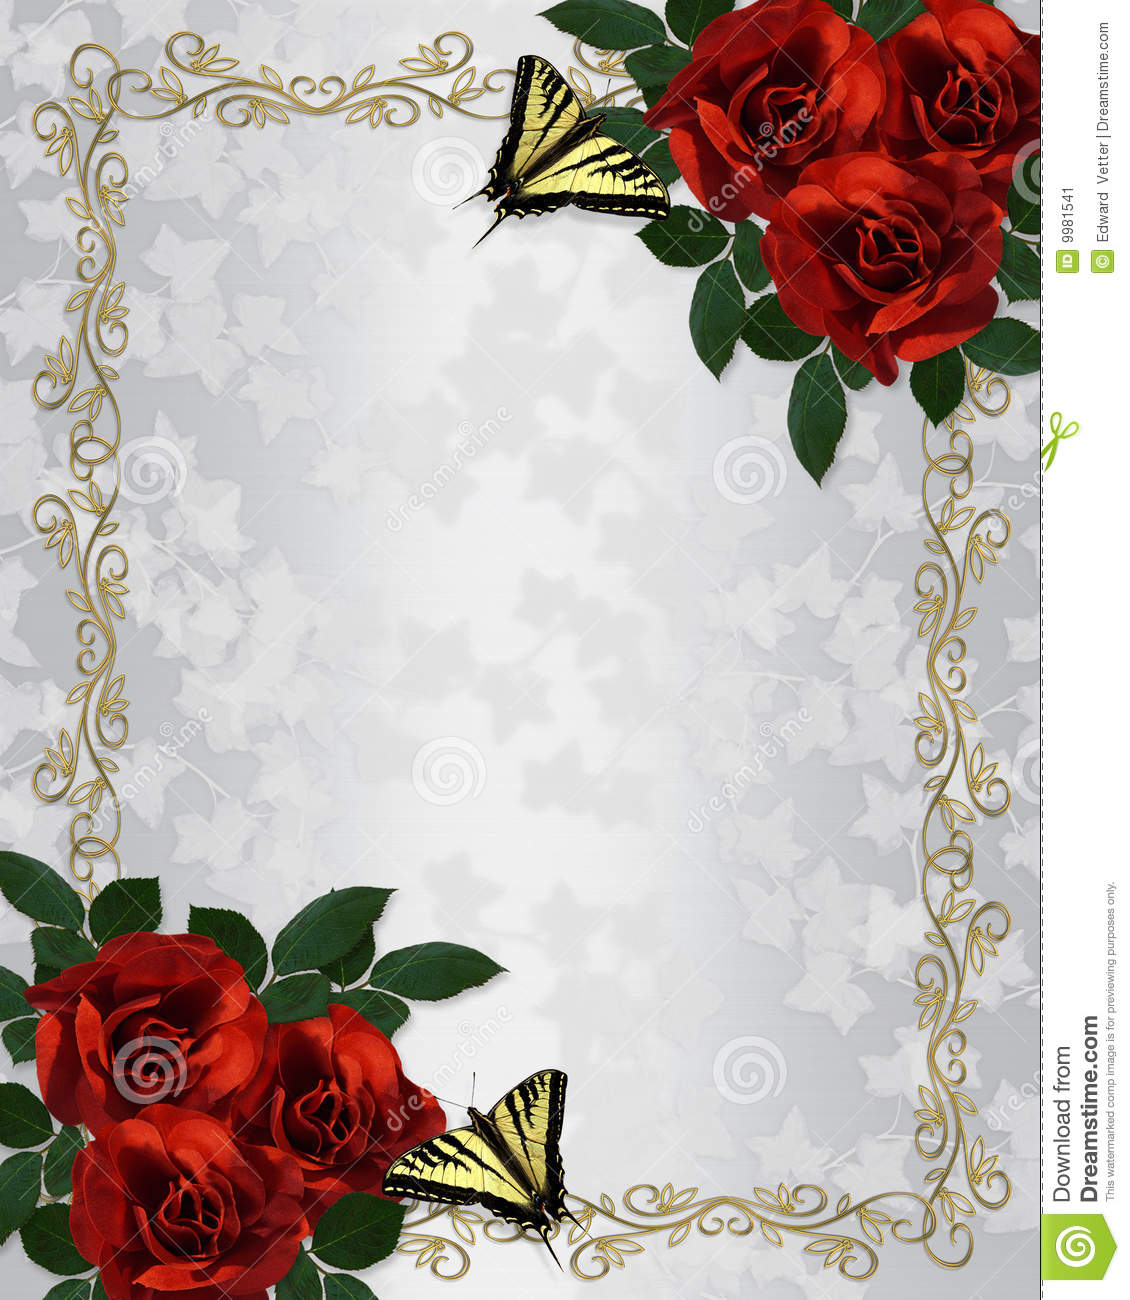 Wedding Invitations With Red Roses: Red Roses Wedding Invitation Stock Illustration